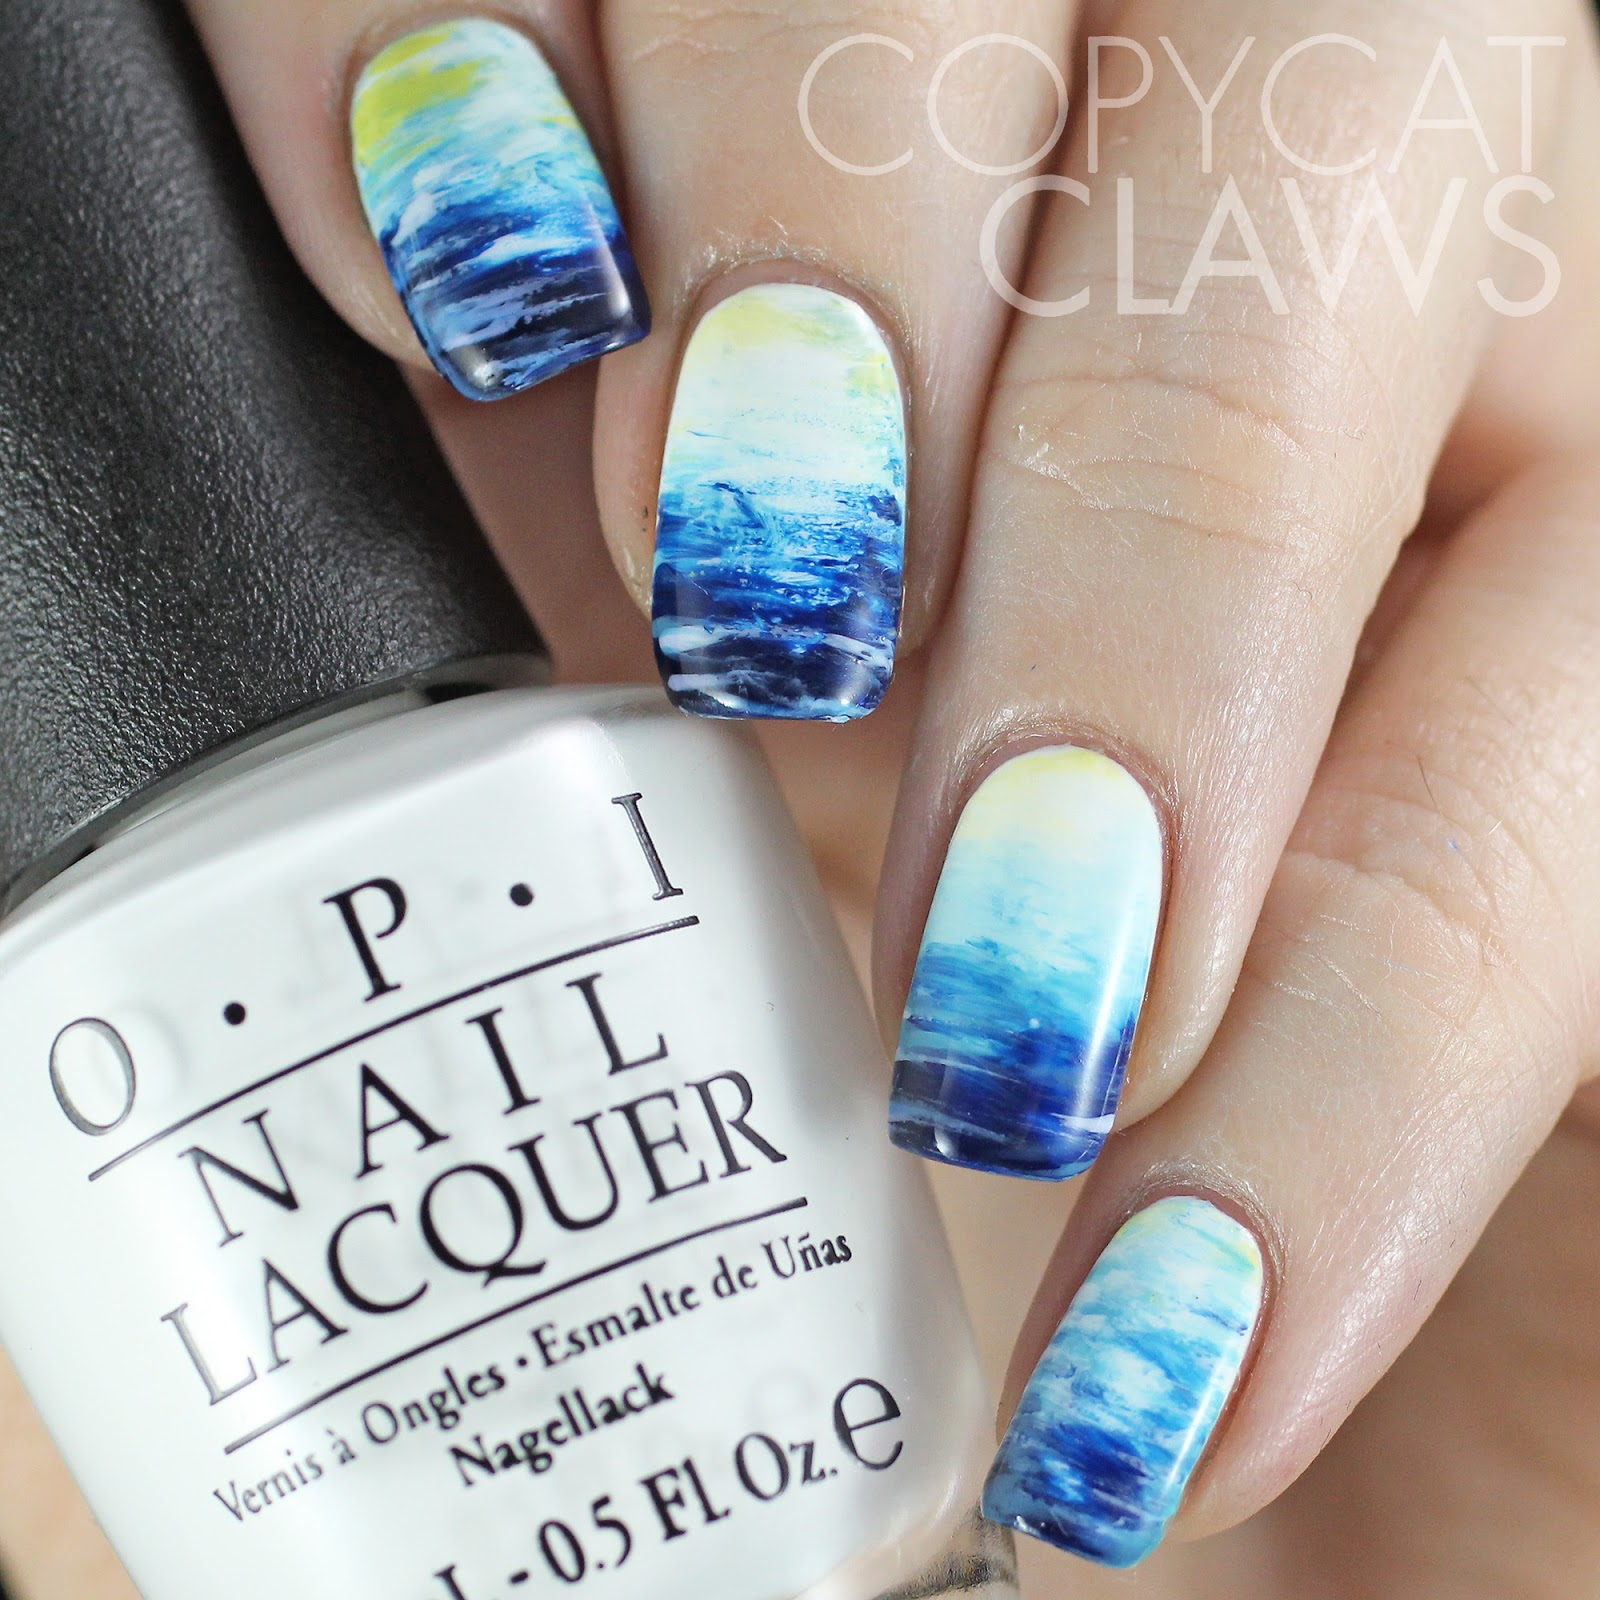 Copycat Claws: The Digit-al Dozen does Nature: Day 3 Fan Brush Ocean ...